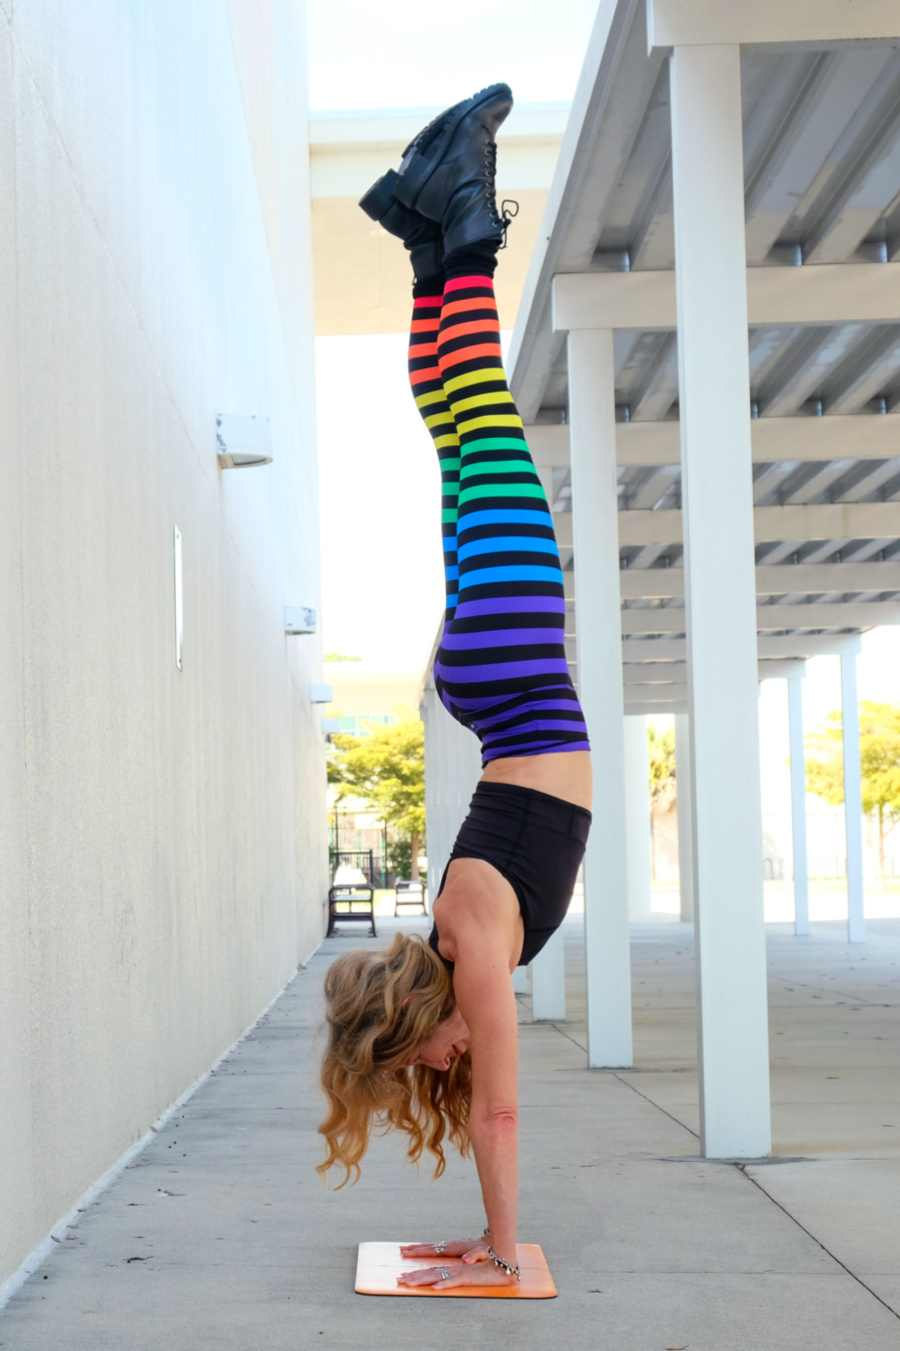 At 55 I set out to learn how to handstand by the age of 60. To my surprise, I accomplished it by my 57th birthday. What's next?